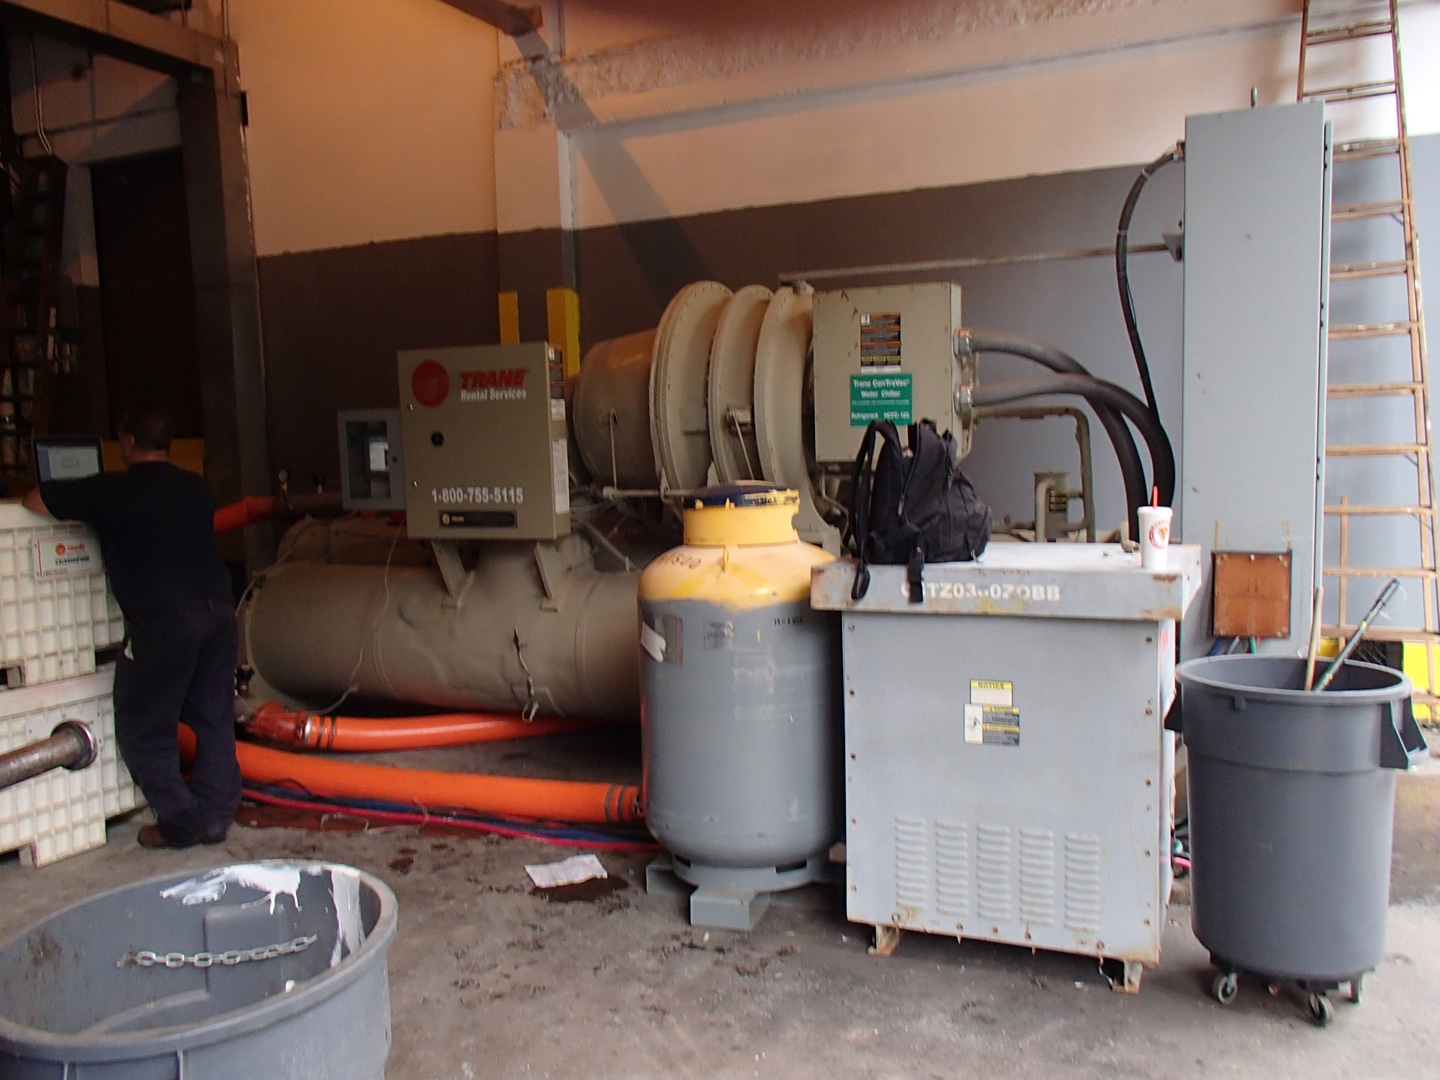 Water Cooled Chiller Rental NY , Water Cooled Chiller Rental DE , Chiller Rental Wash DC , Chiller Rental Baltimore